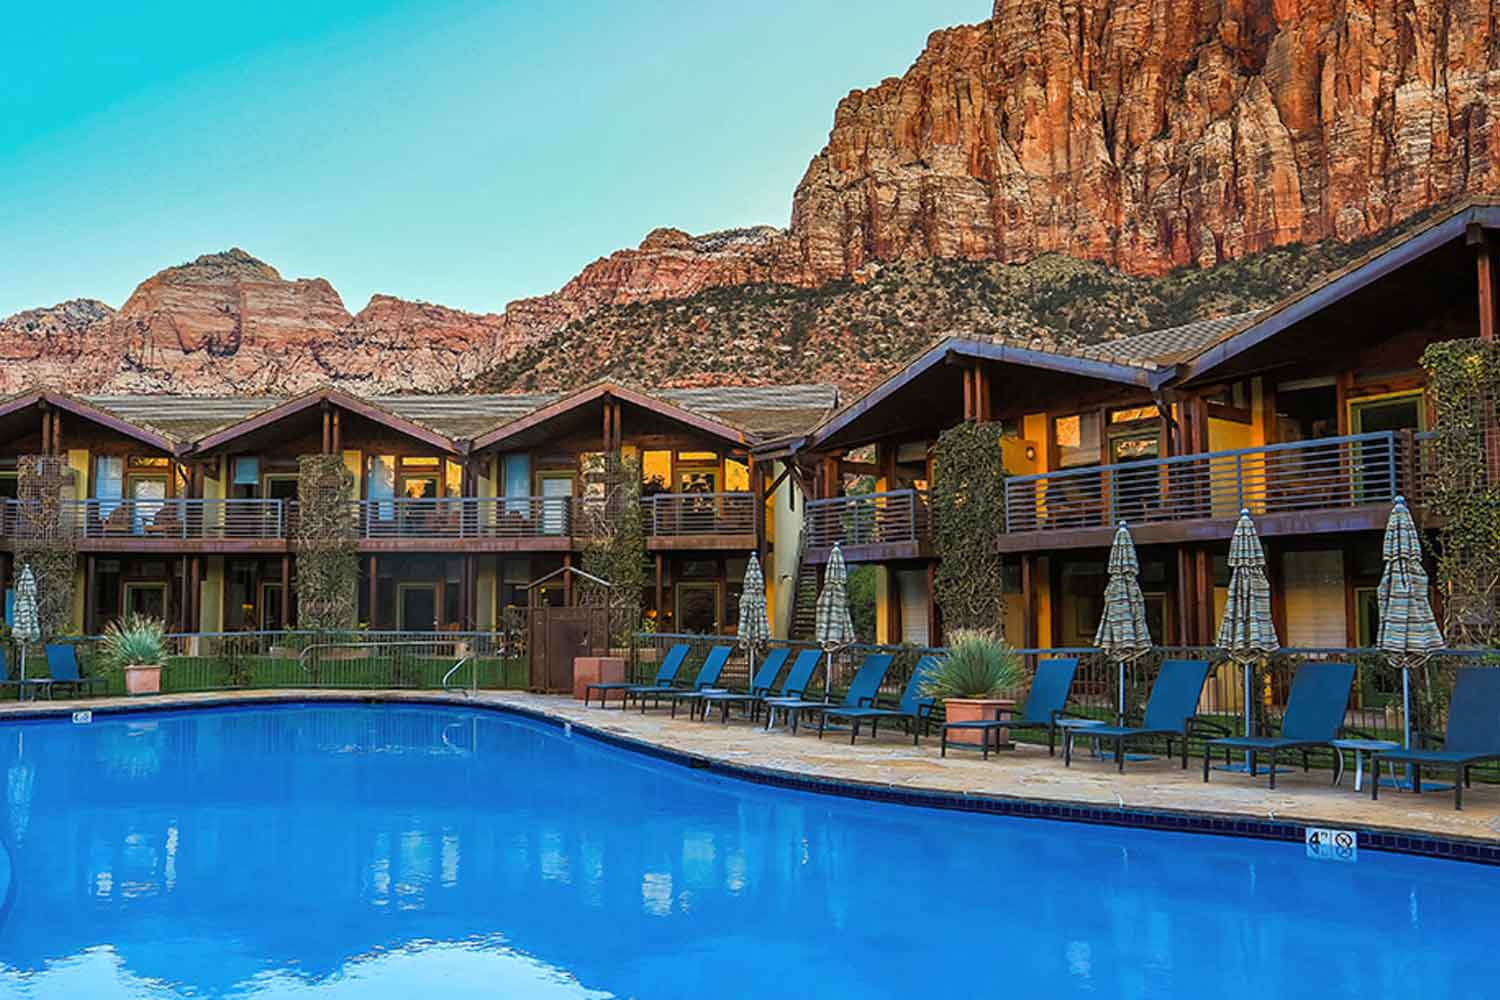 Featured Hotel: Desert Pearl Inn - Springdale, Utah (Two Nights)